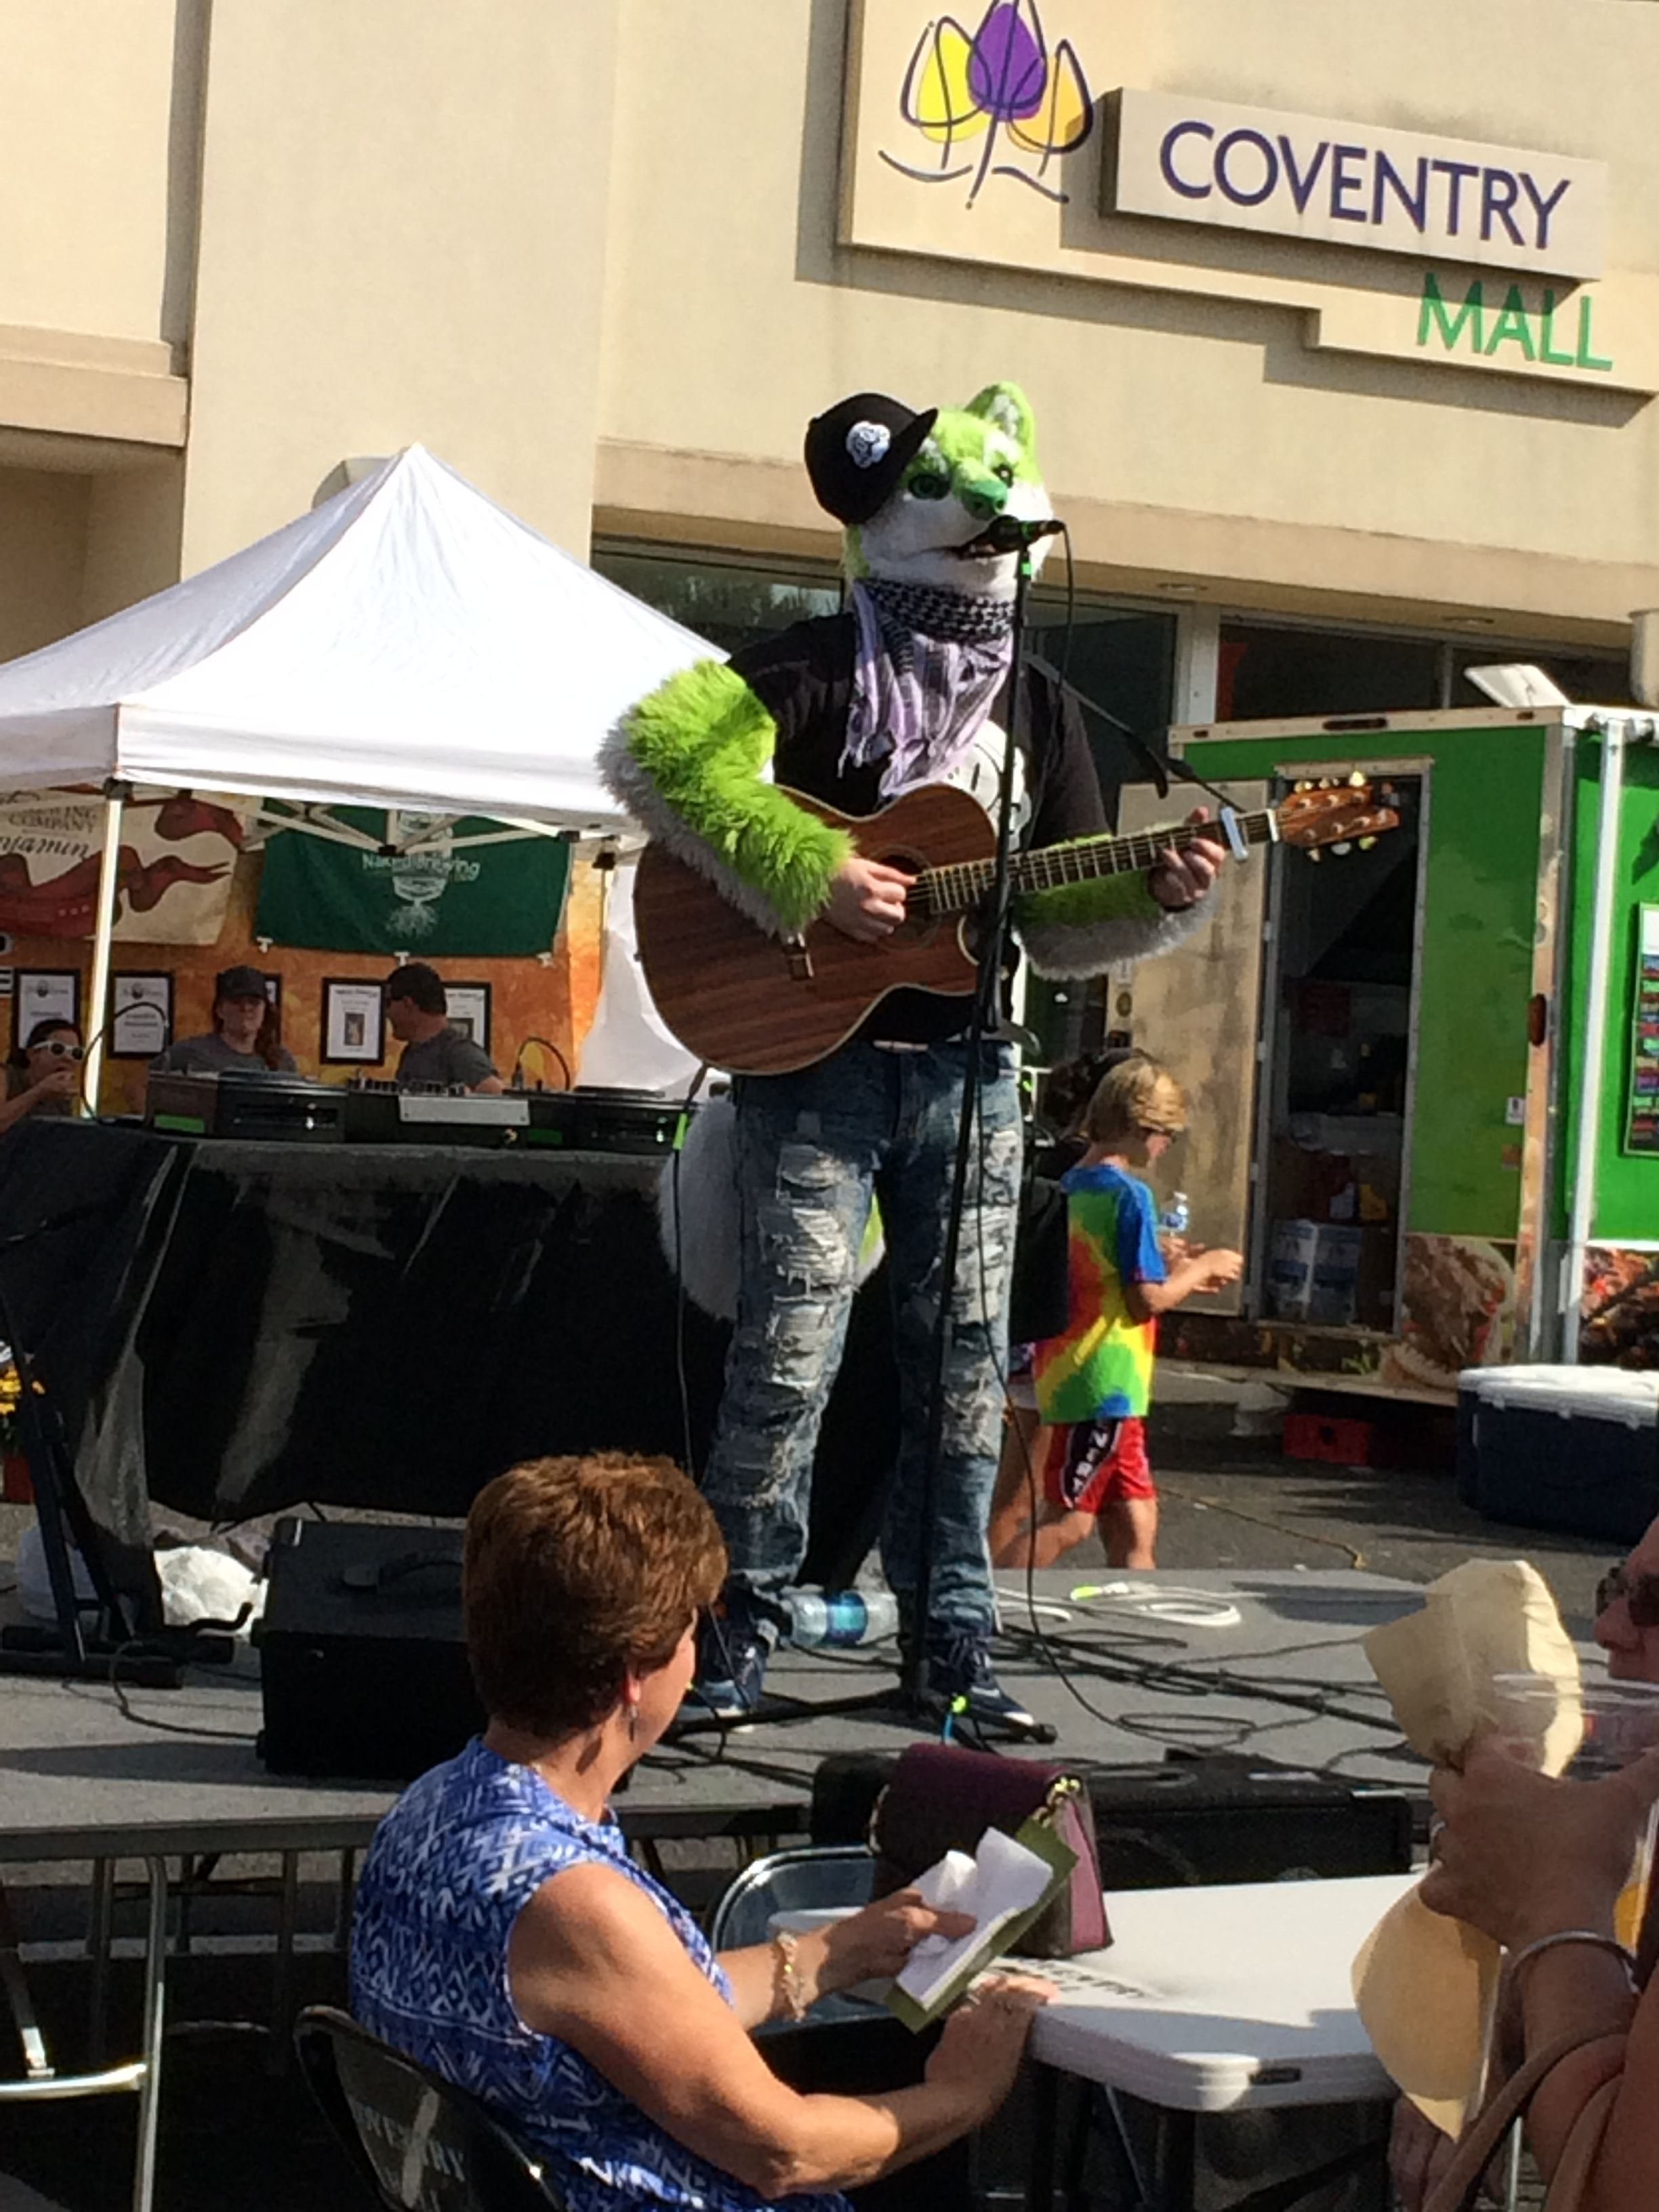 A rockin' time at the Food Truck Craze Fall Fest happening